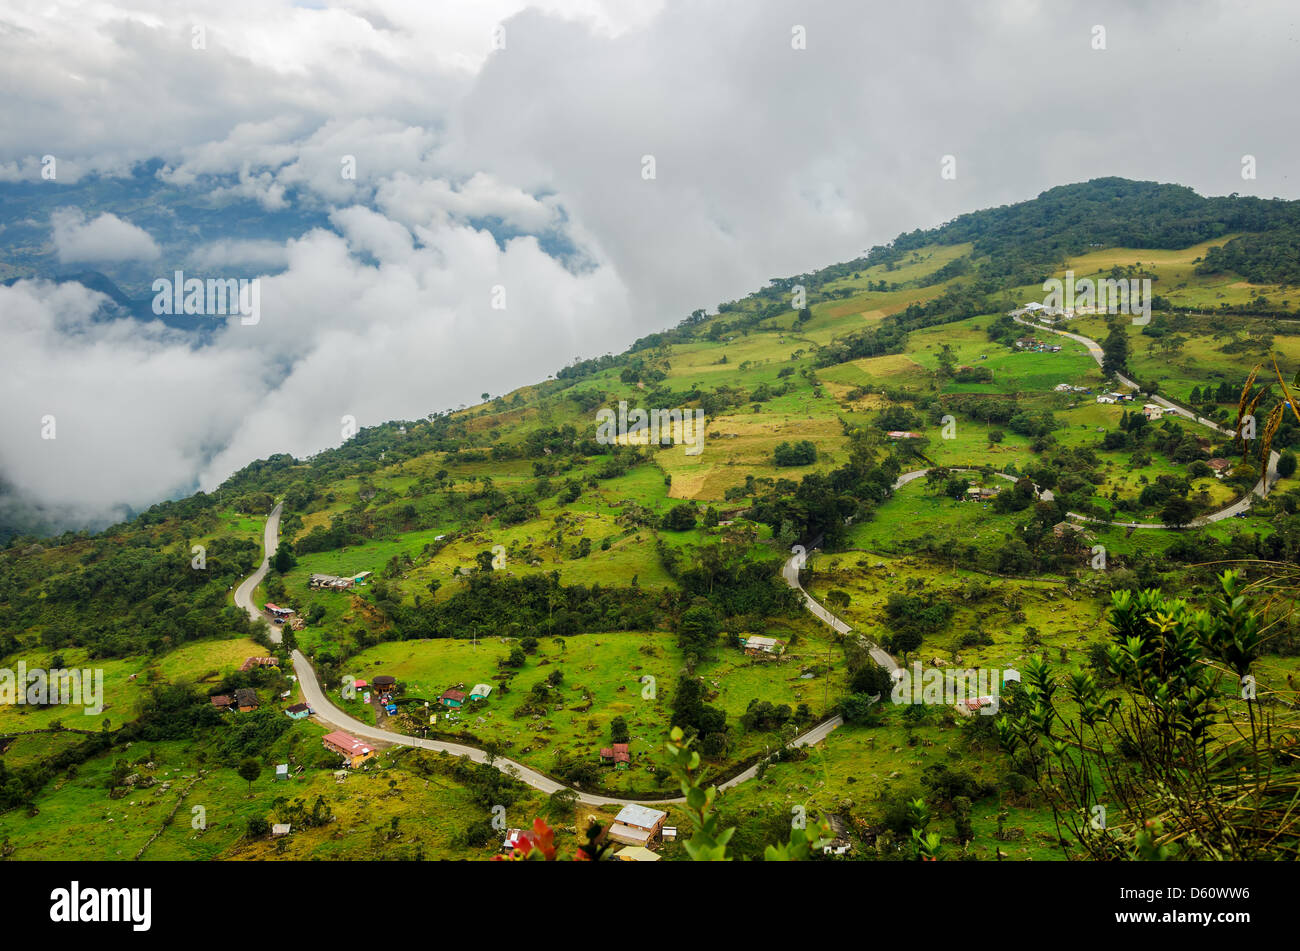 High altitude road winding through a sparsely populated valley - Stock Image